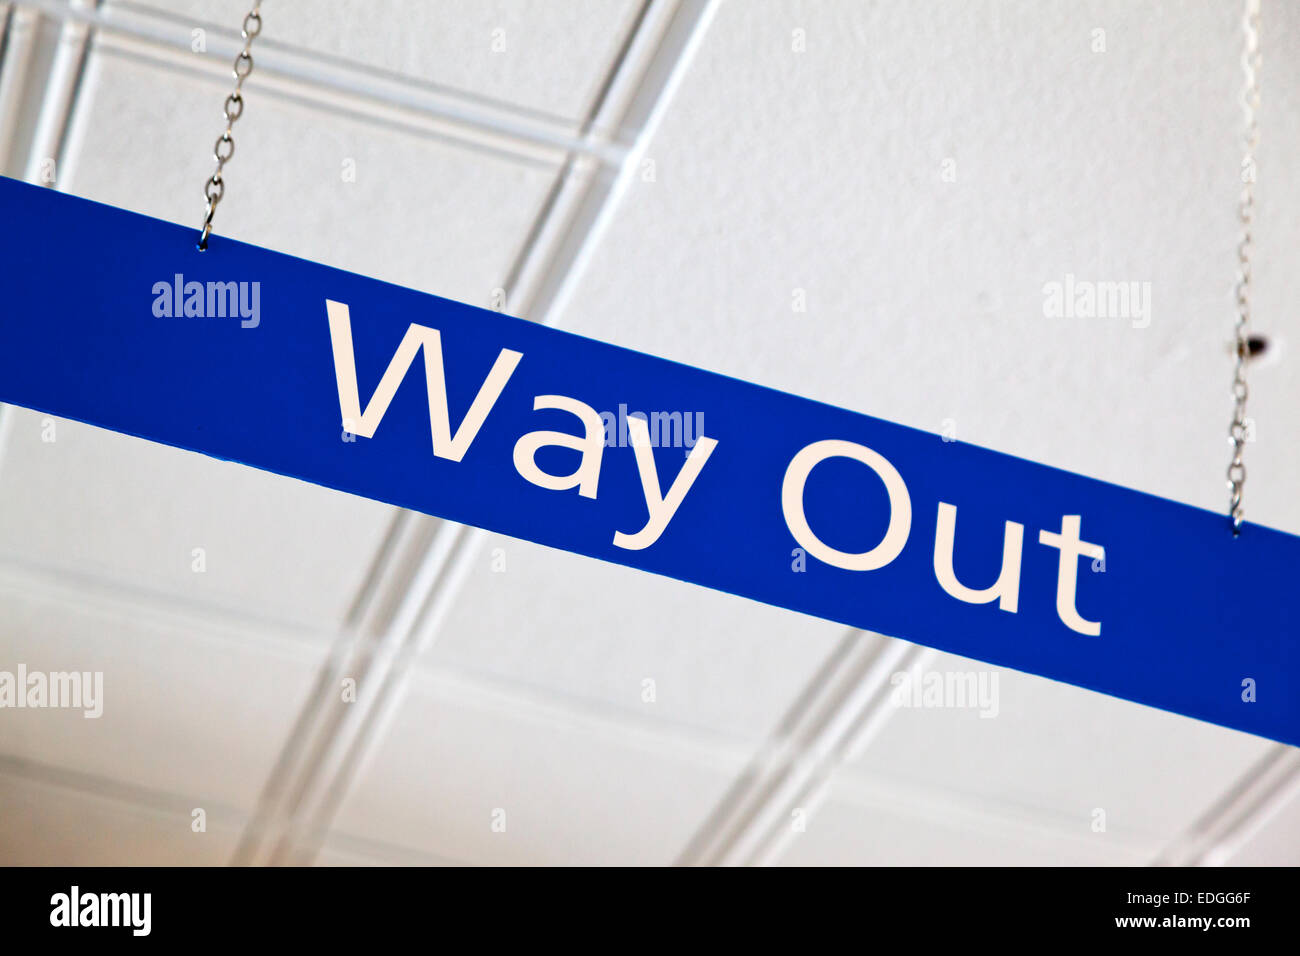 Blue Way Out sign hanging on a metal chain from the ceiling of a British National Health Service NHS hospital - Stock Image